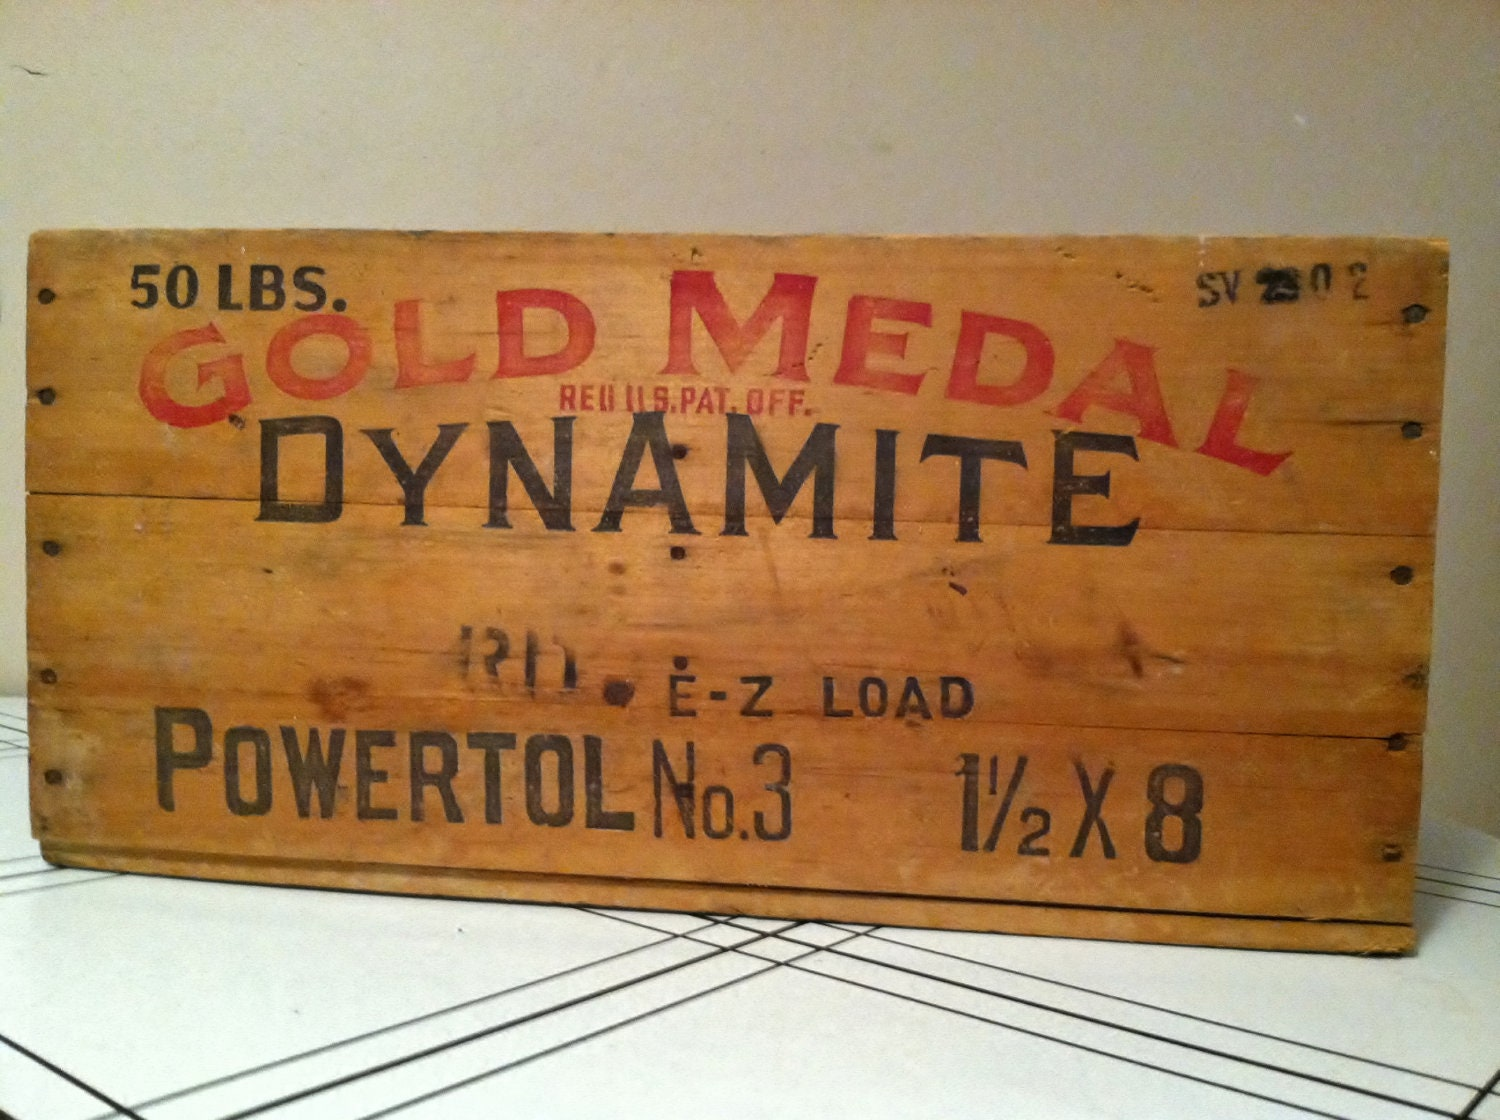 Gold Metal Dynamite Box